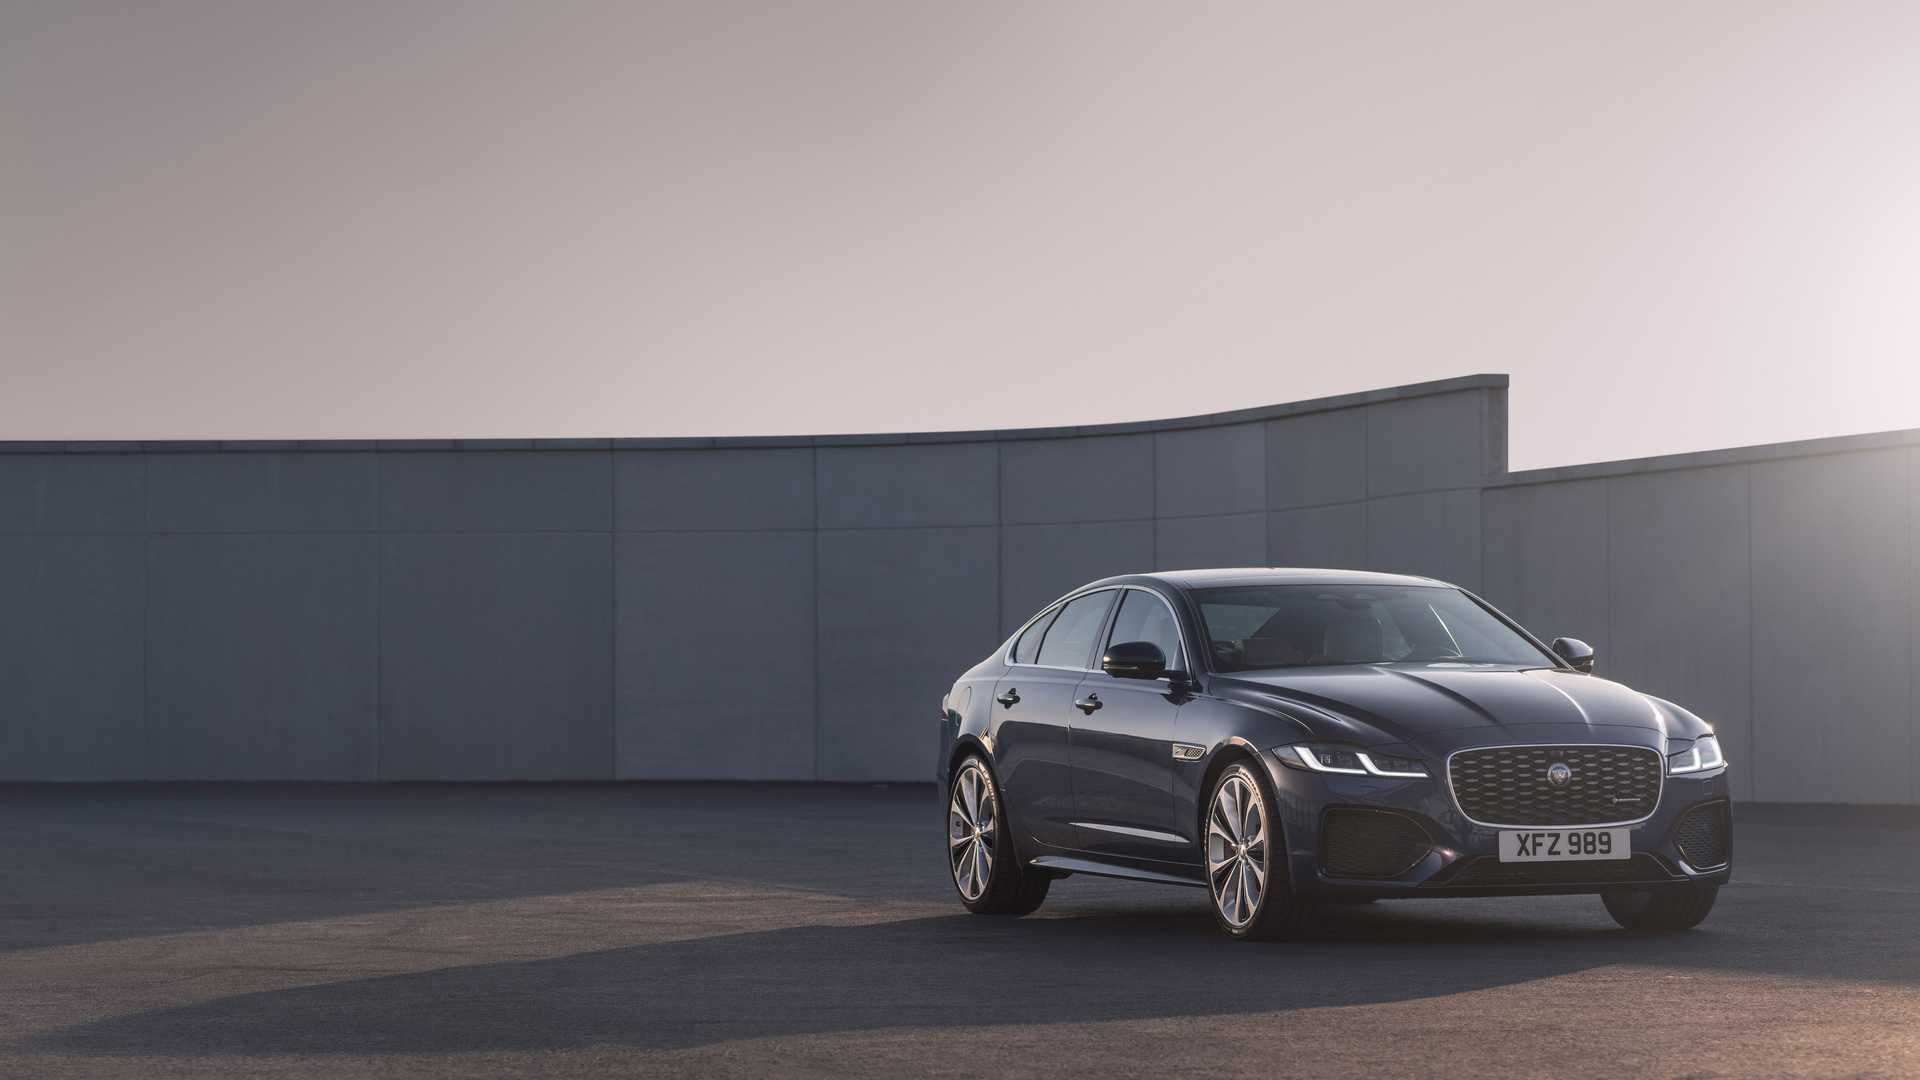 2021 Jaguar XF Mid-Cycle Refresh Revealed With Major Interior Updates - divisionkent.com